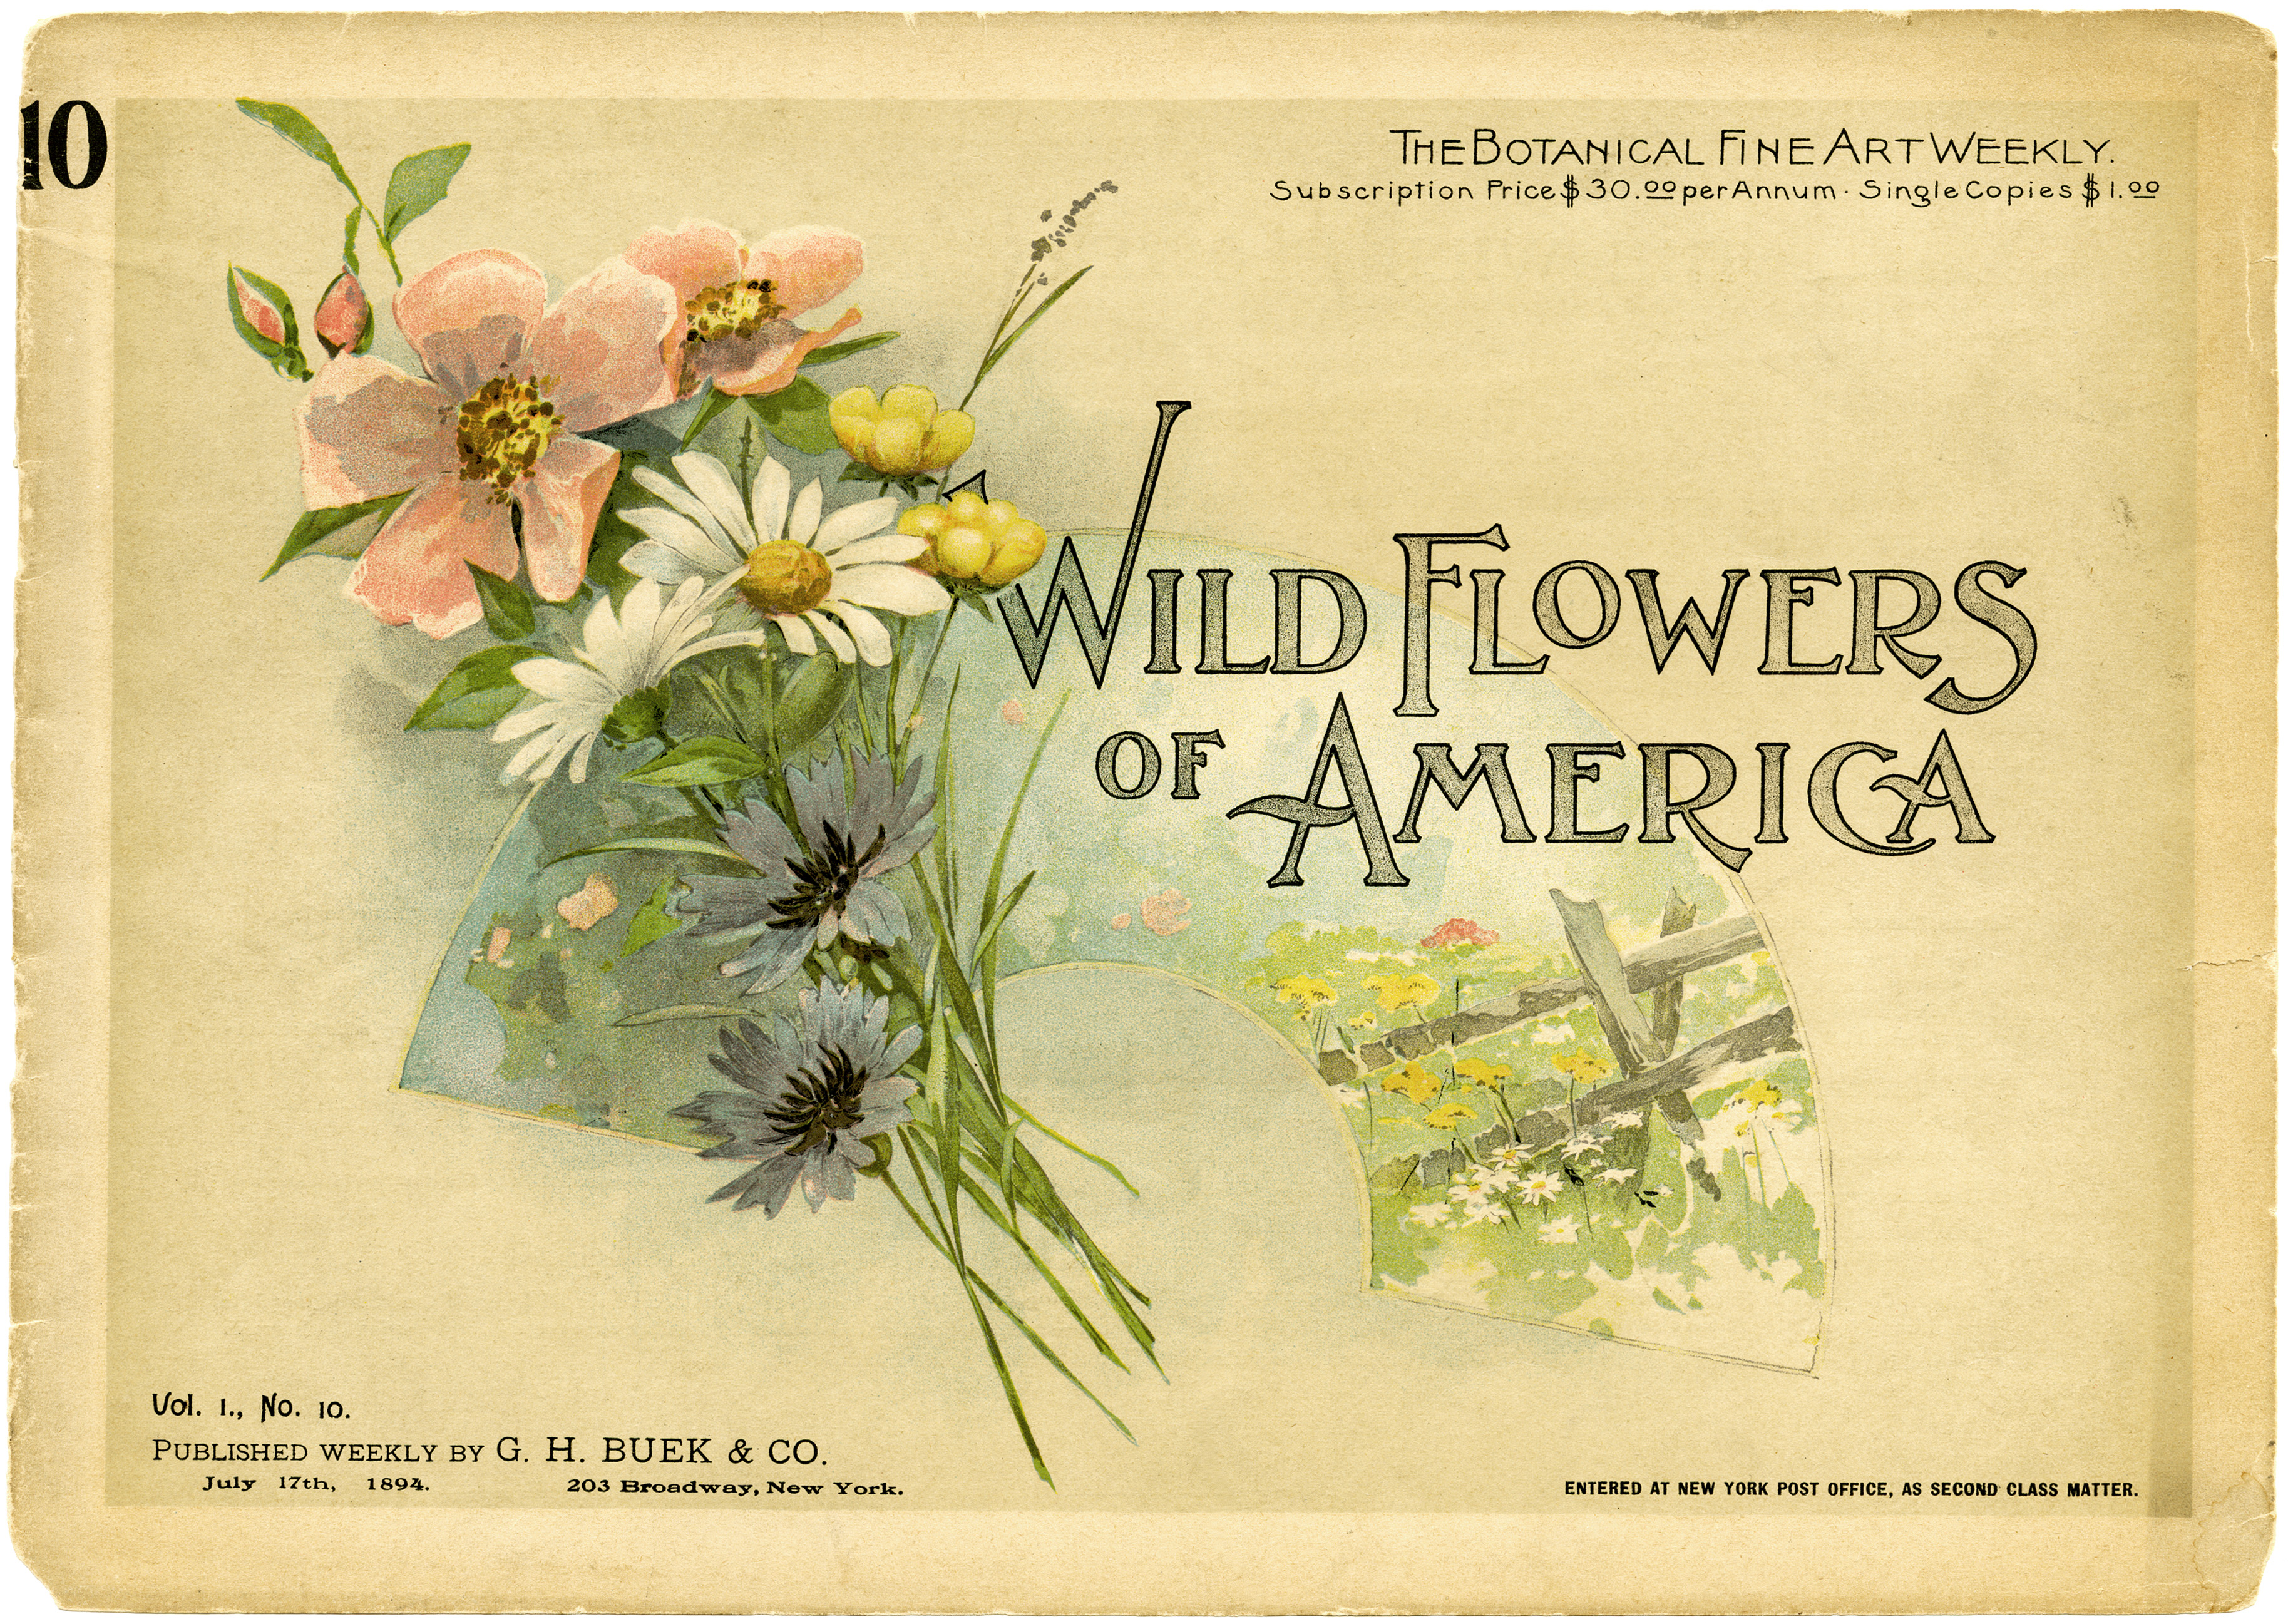 wild flowers of america, 1894 book of flowers, free vintage image, free printable, vintage botanical image, botanical illustration, vintage book cover, public domain commercial use image, victorian flower book, vintage floral illustration buek and co botanical, botanical fine art weekly